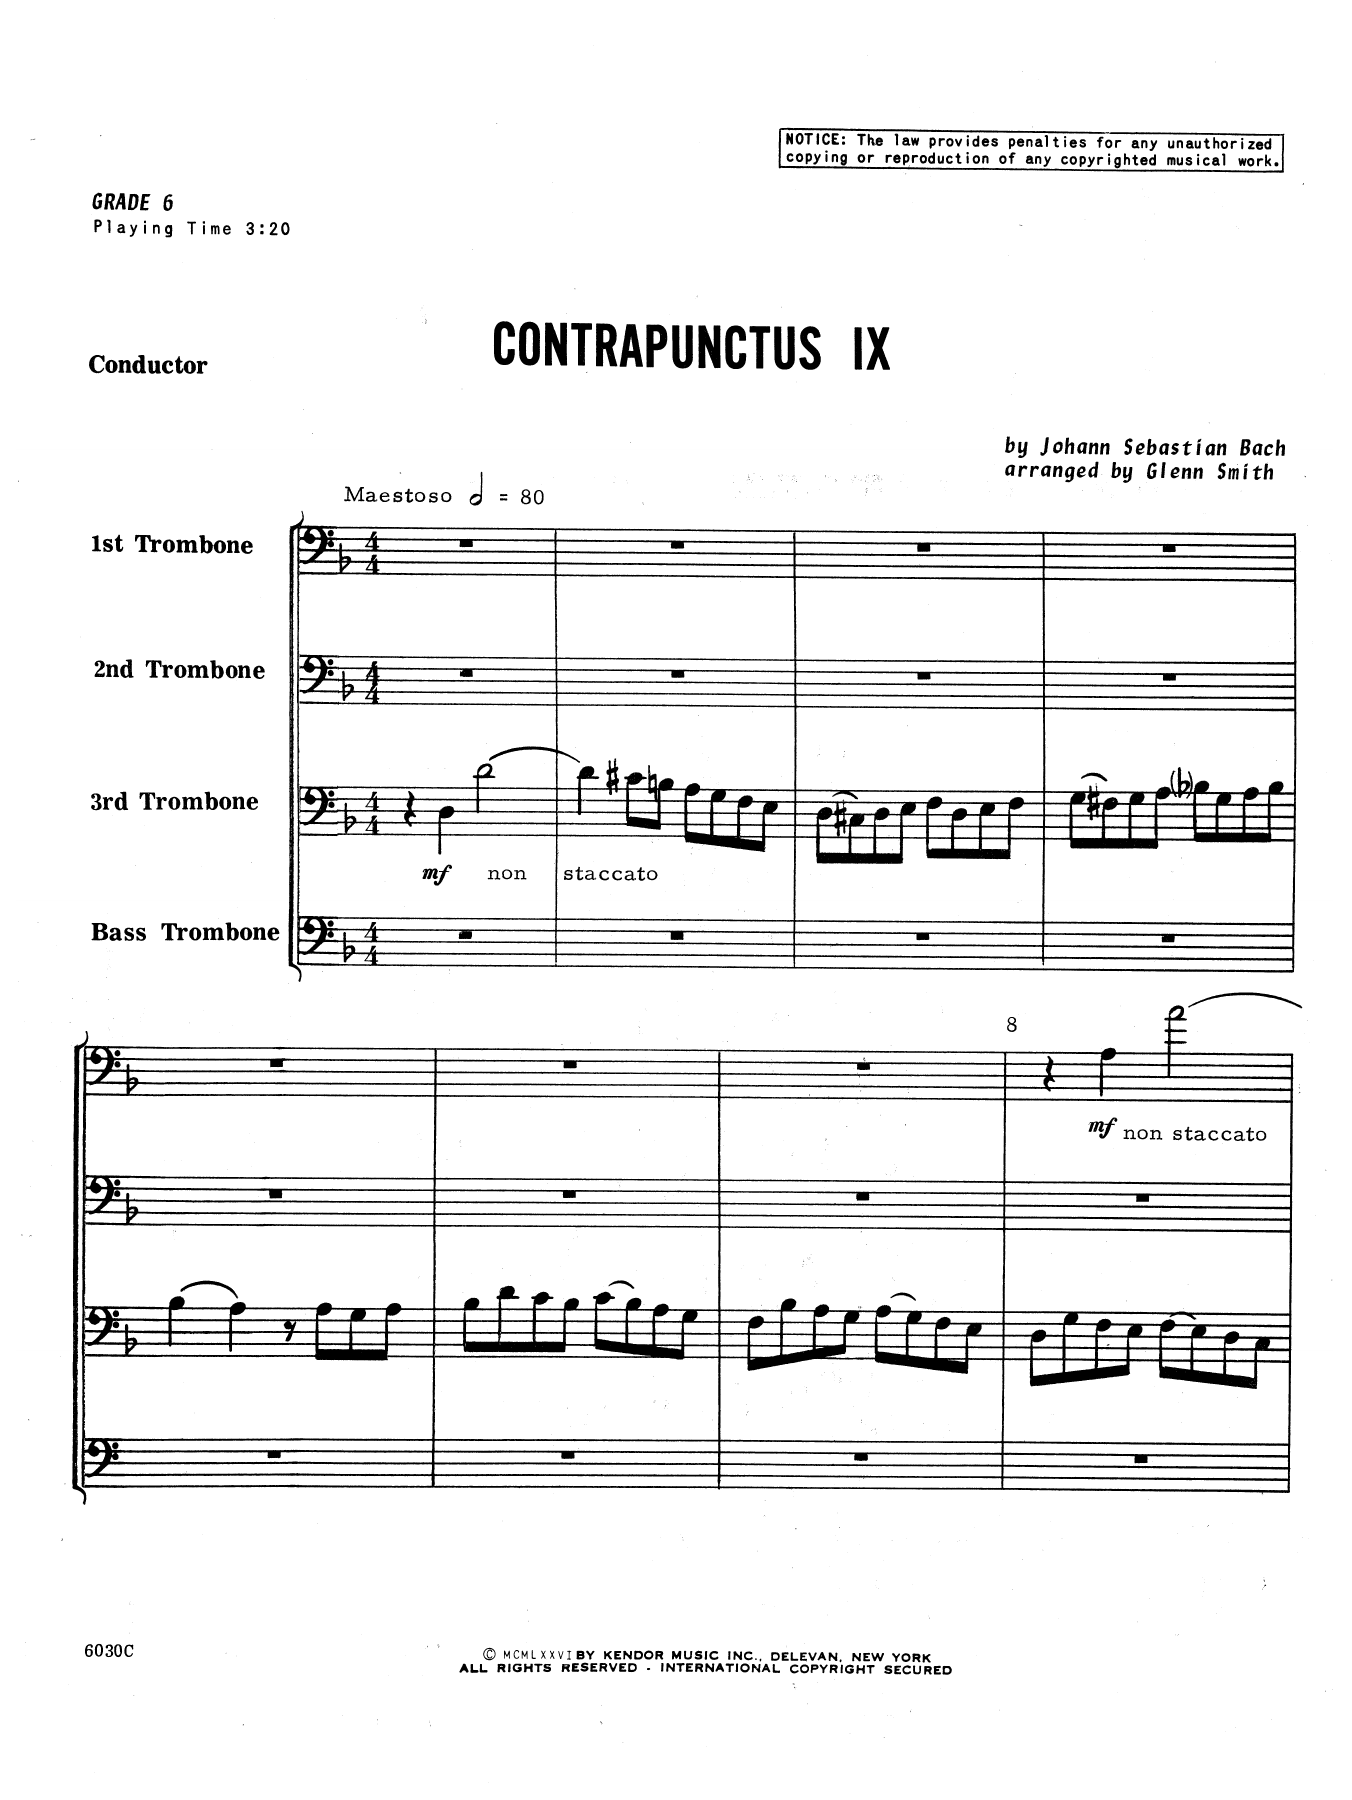 Contrapunctus IX (COMPLETE) sheet music for trombone quartet by Glen Smith